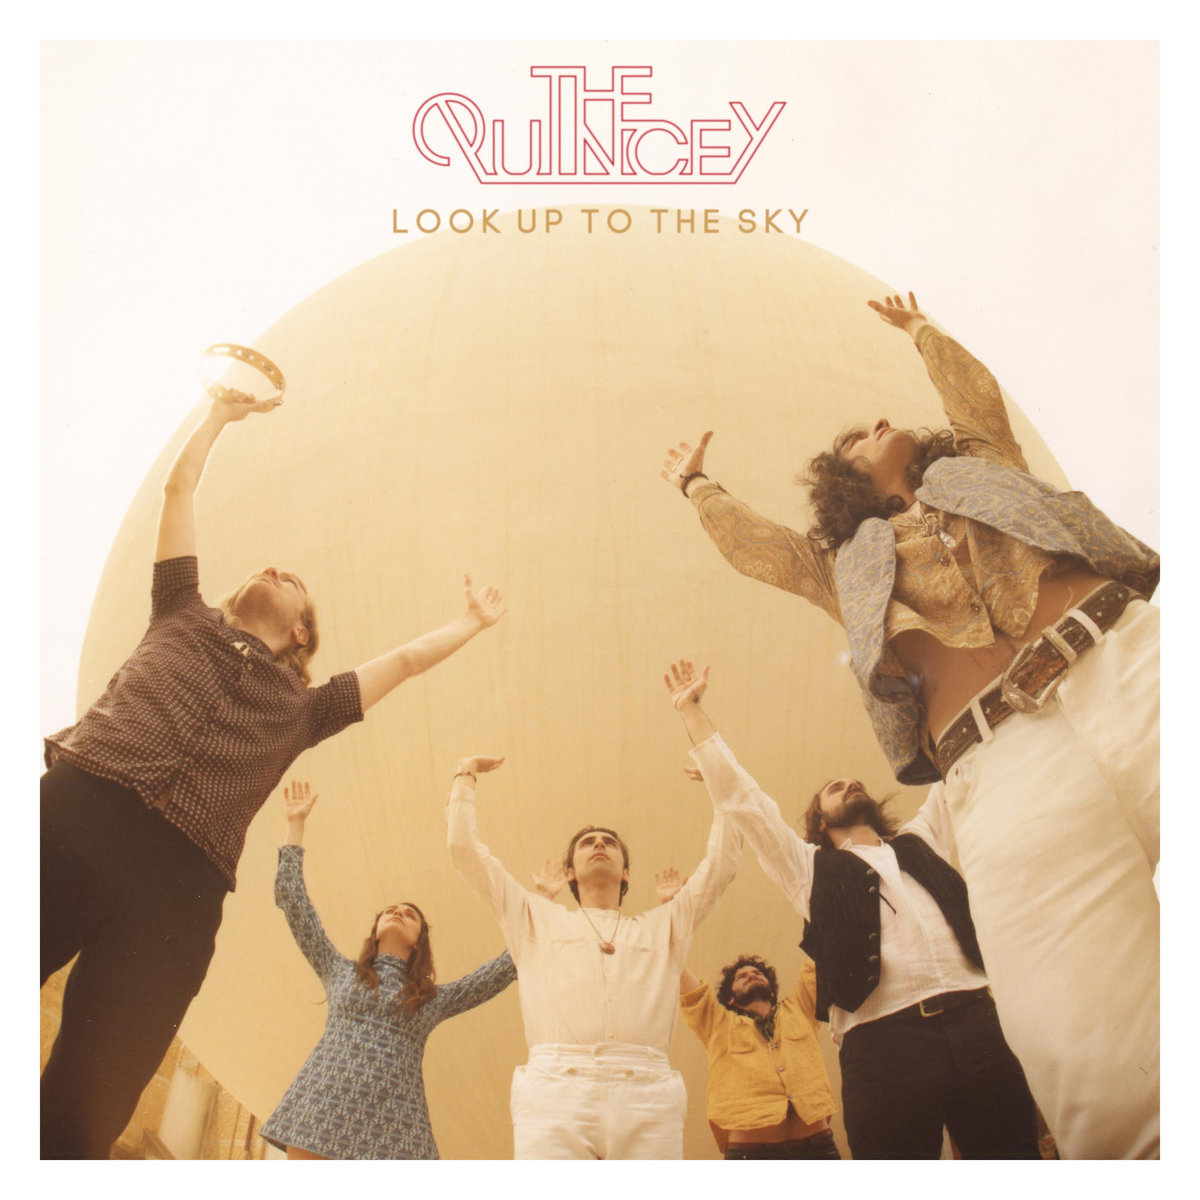 The Quincey - Give Me Back @ 'Look Up To The Sky' album (alternative, united kingdom)